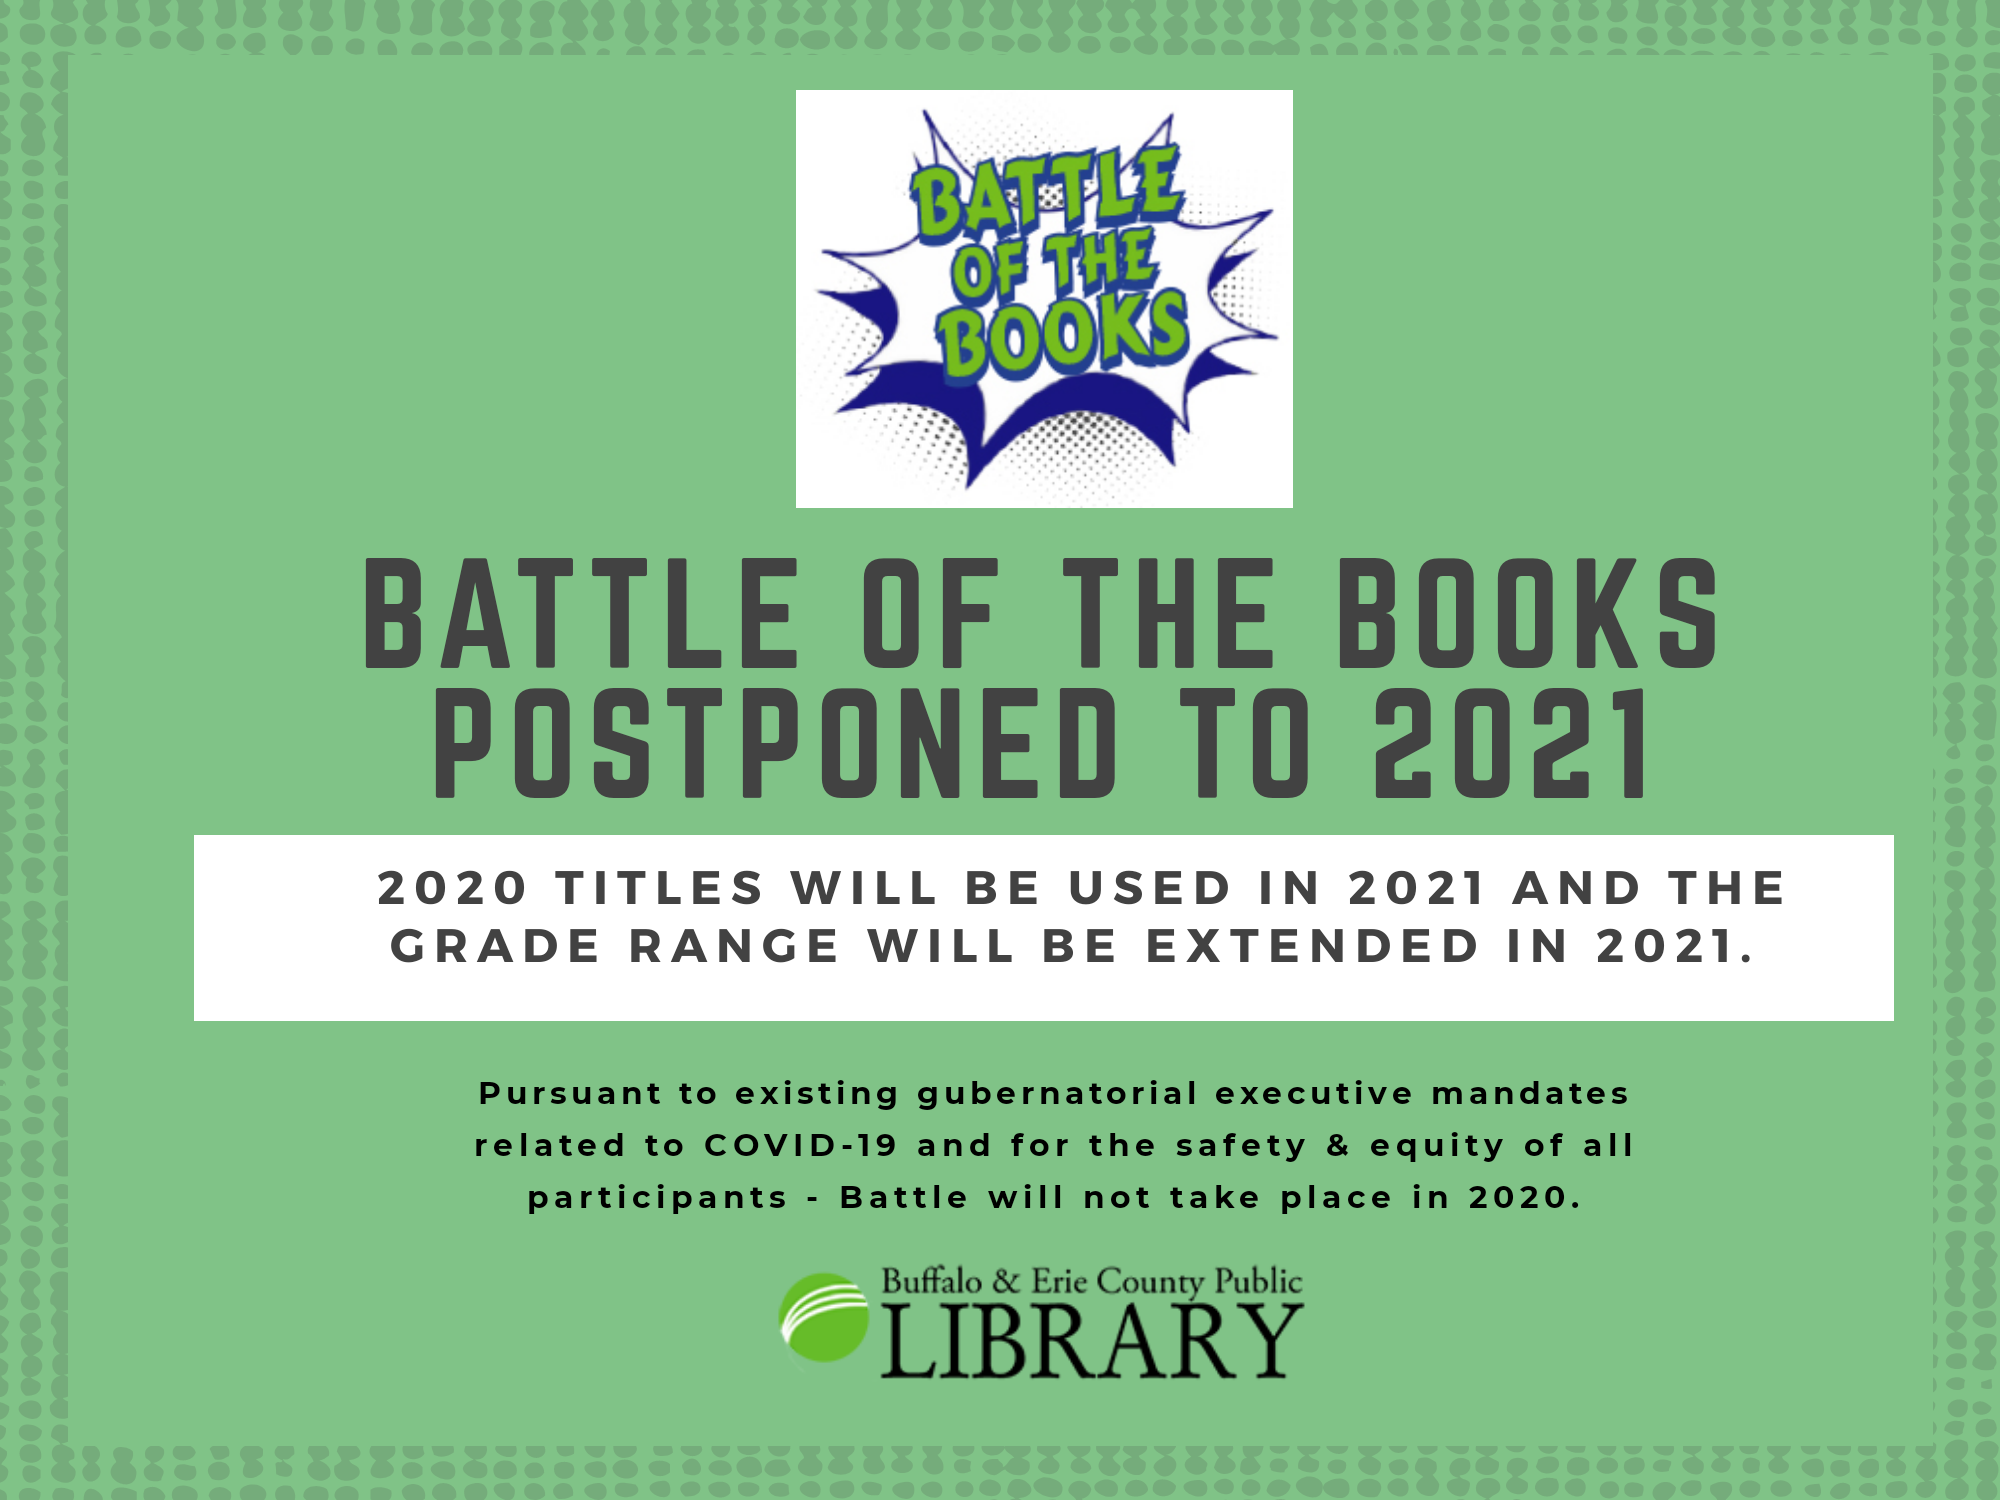 Celebrate the 22nd Annual Battle of the Books in 2021